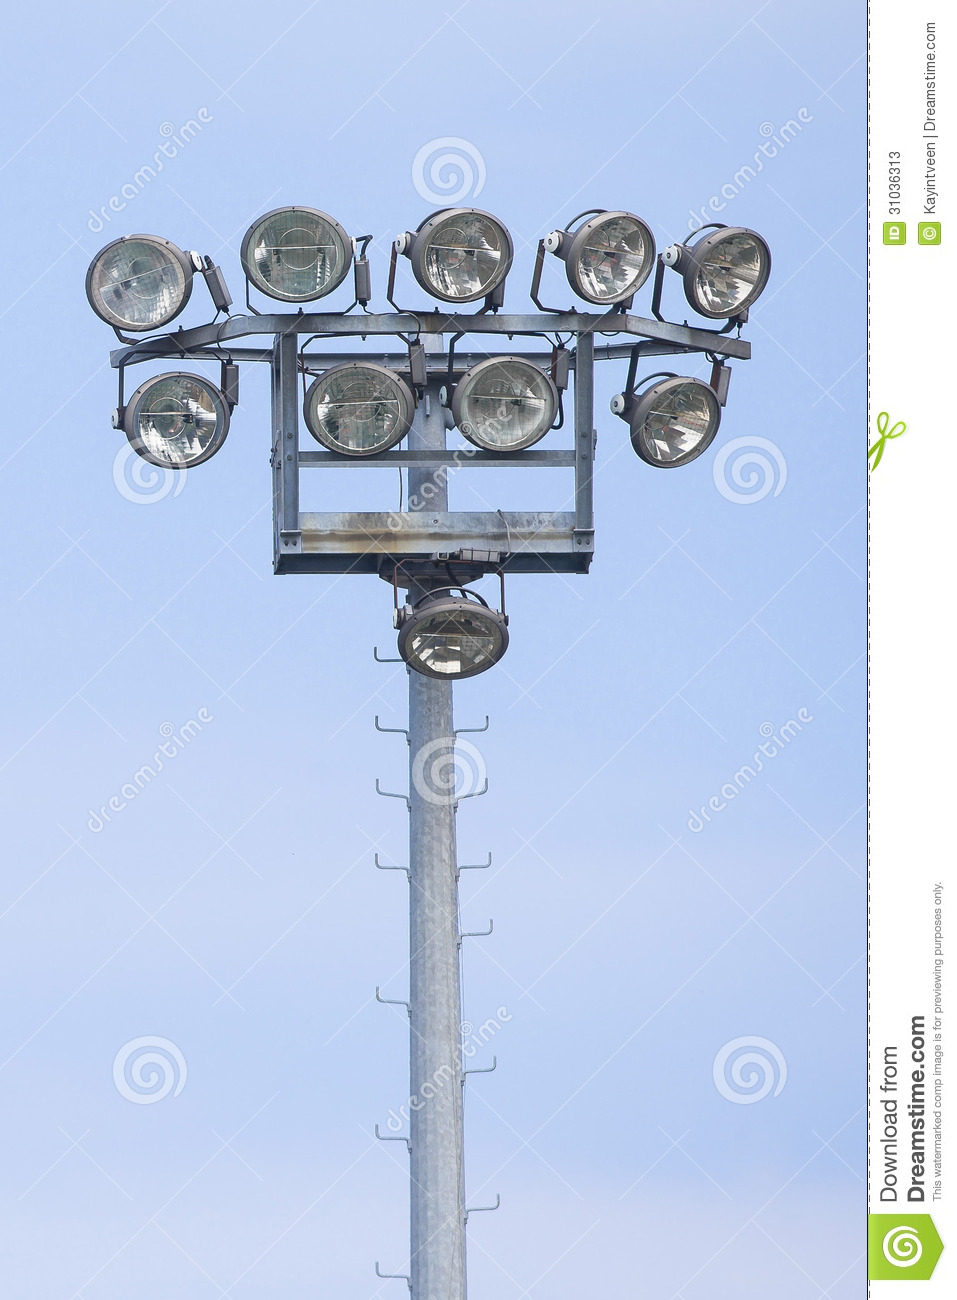 Outdoor stadium lights stock image image of electronics 31036313 outdoor stadium lights mozeypictures Image collections